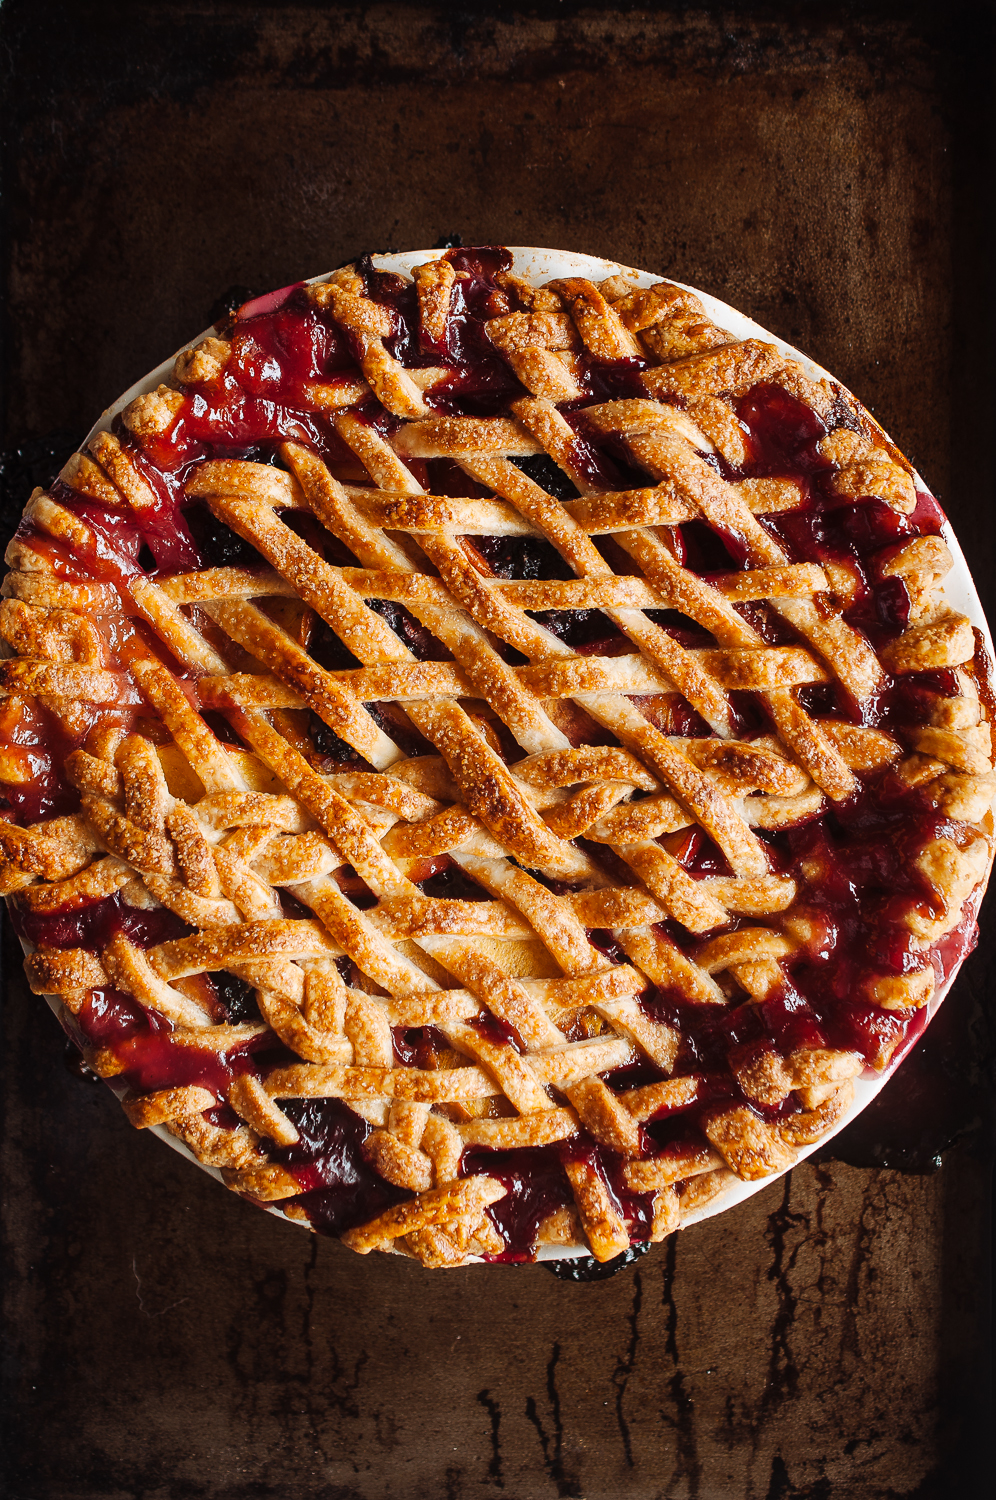 Peach blackberry pie 5.jpg